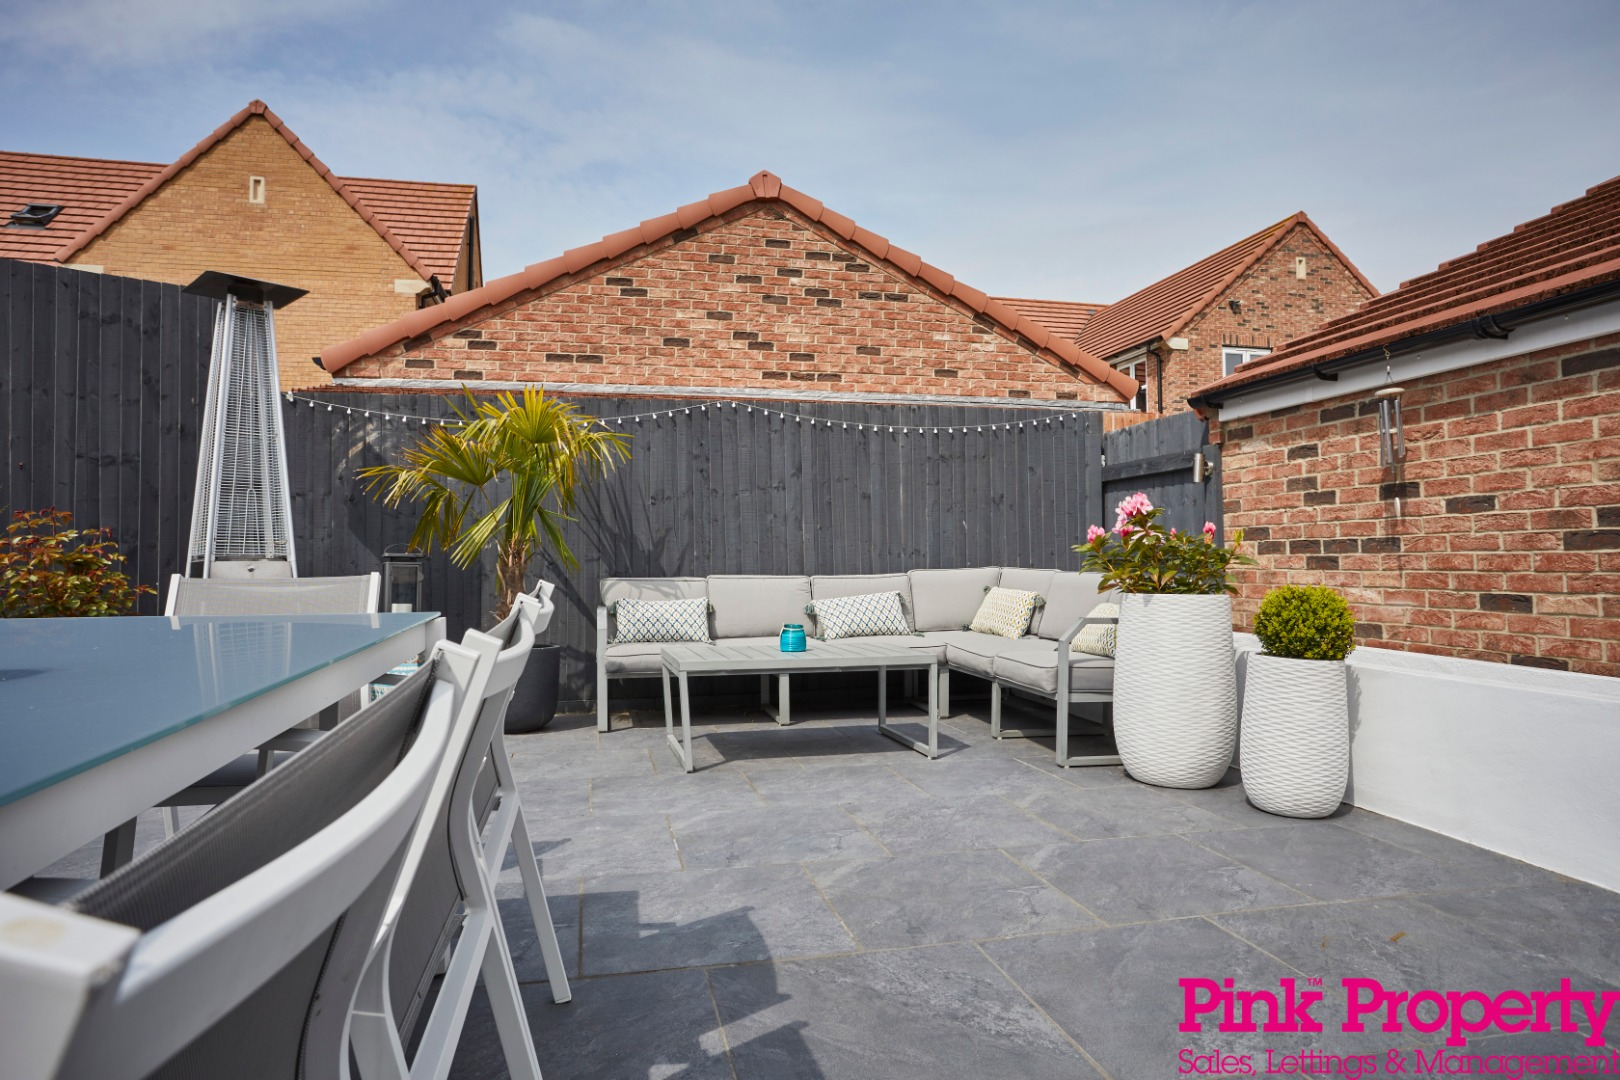 5 bed house for sale in Nursery Close, Swanland, HU14 8